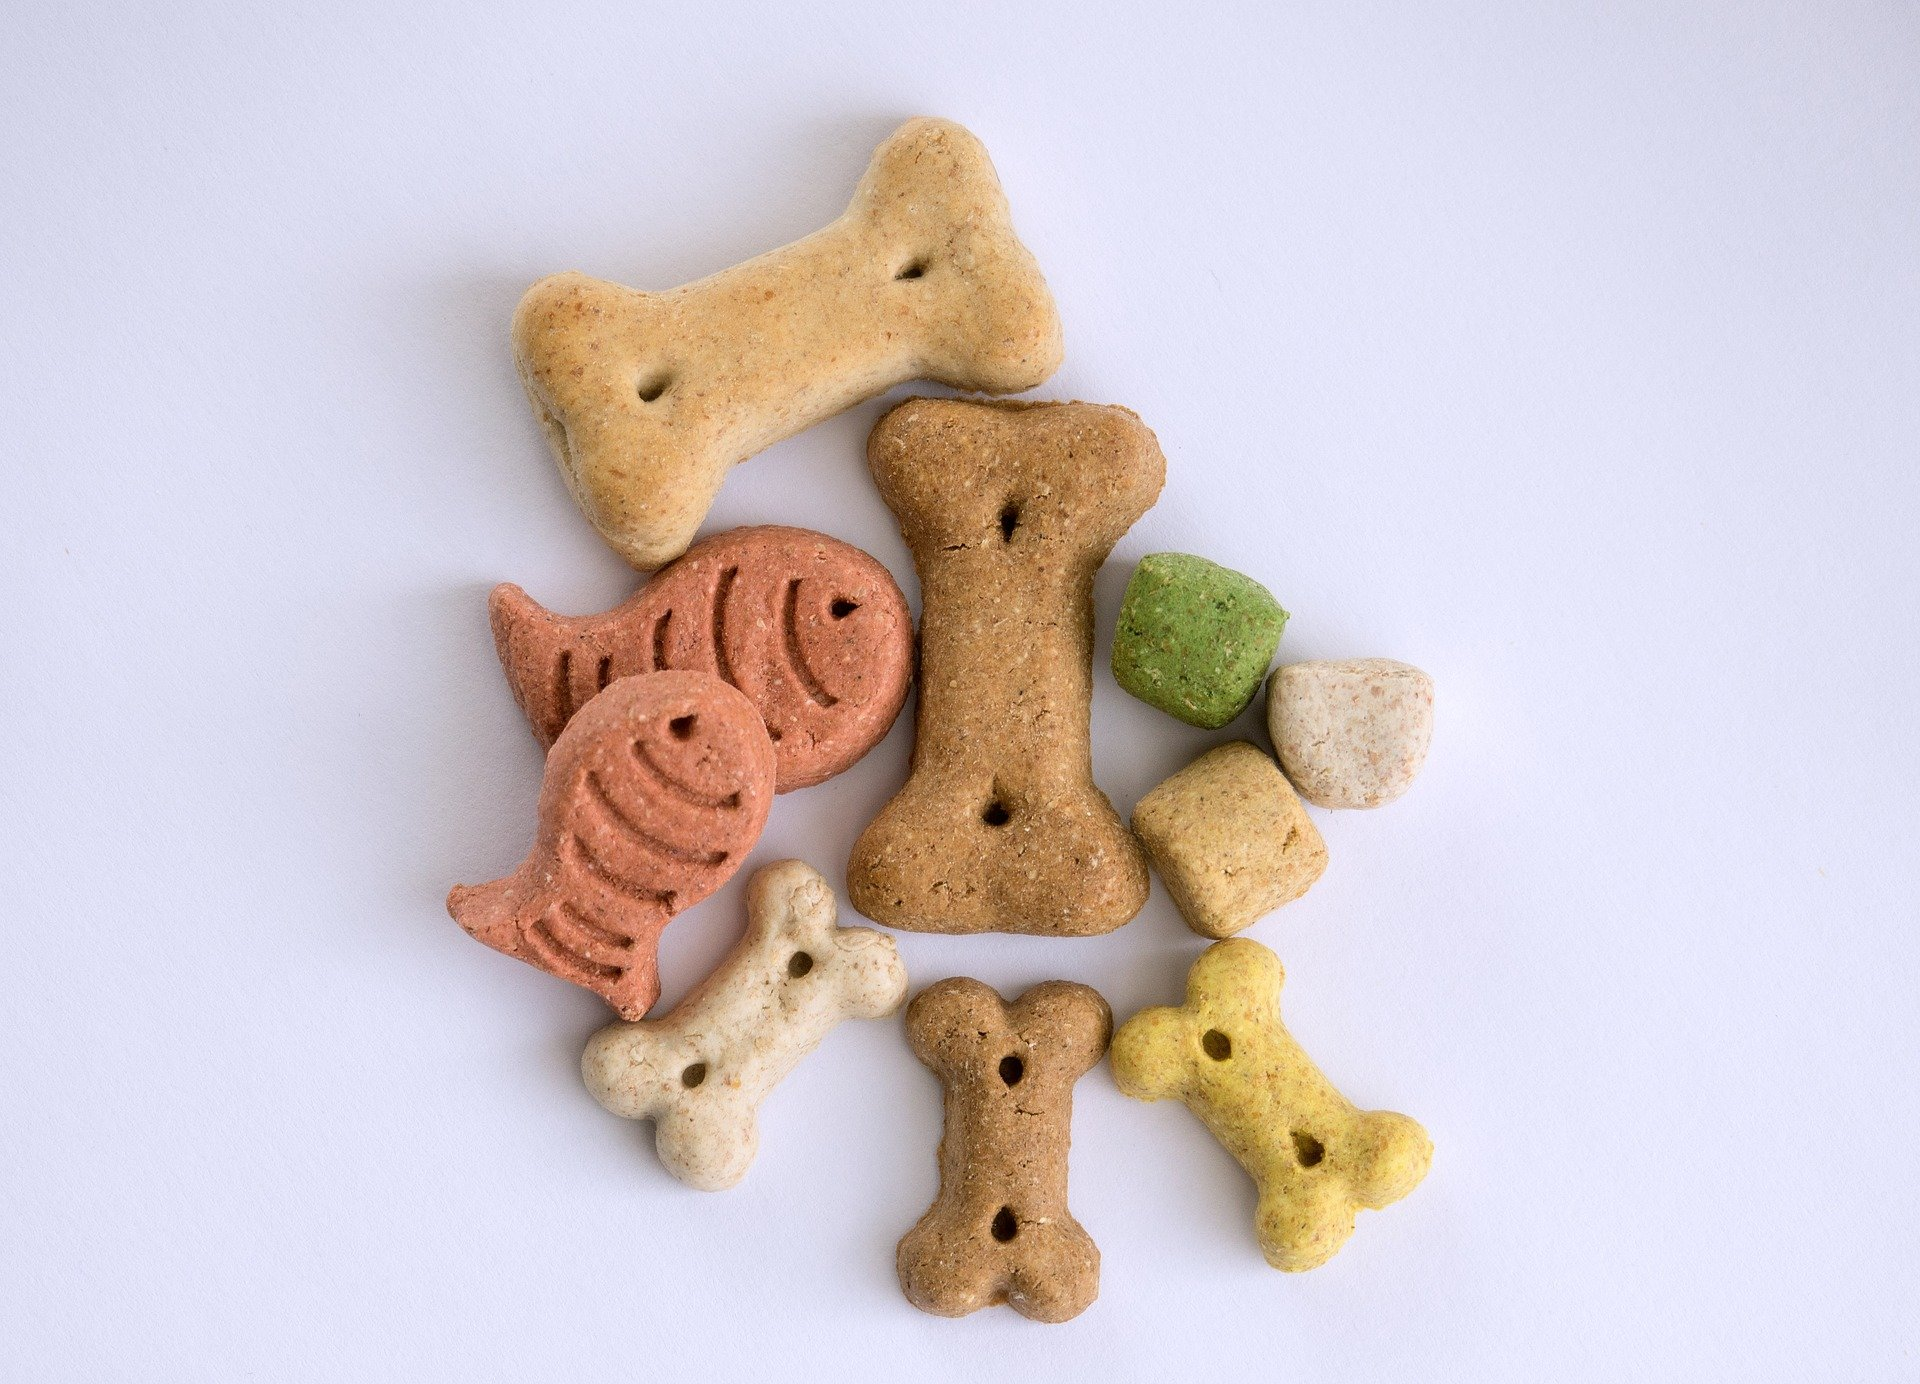 An assortment of dog treats